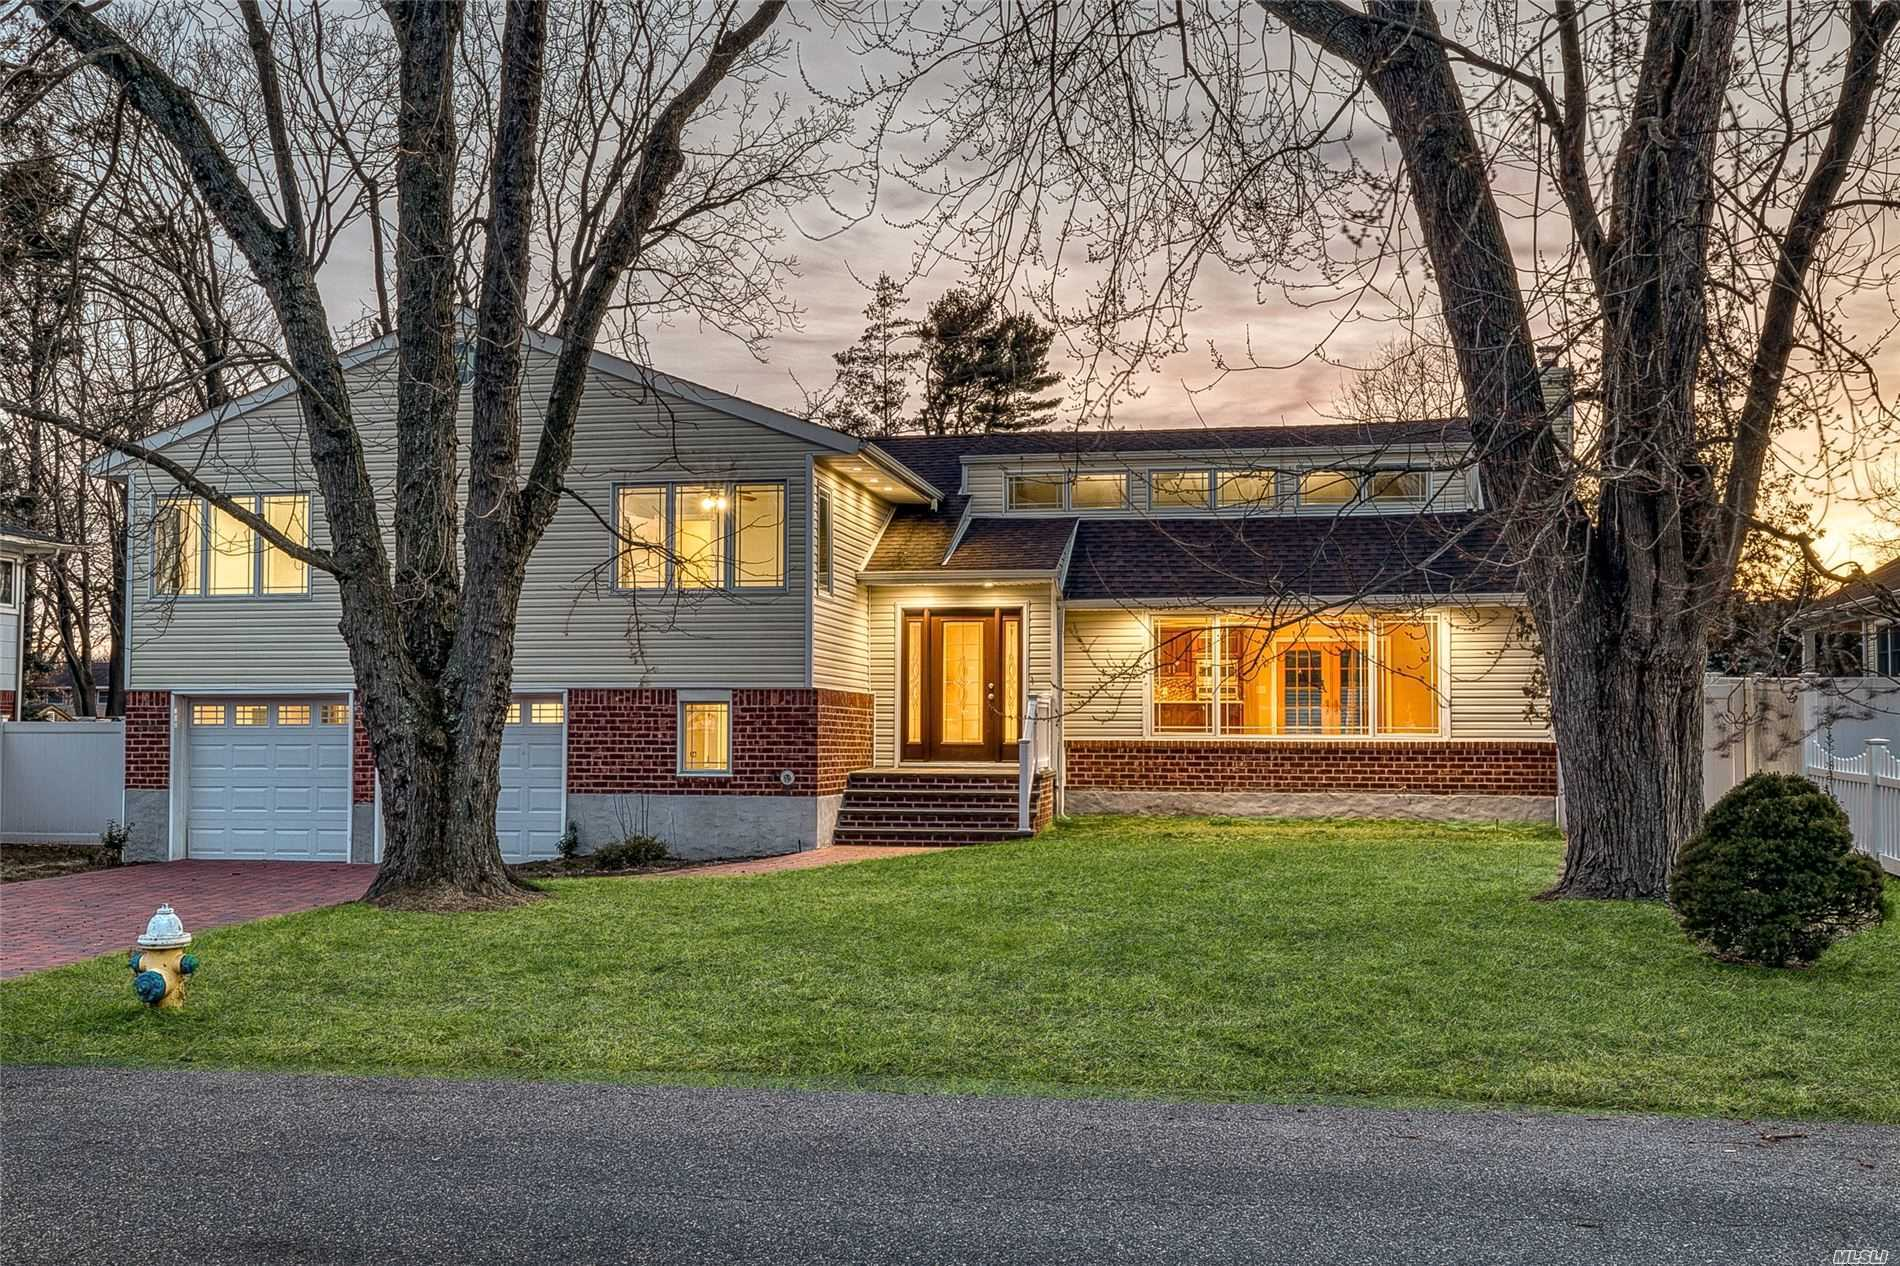 Completely Renovated & Redesigned 6 Bedroom, 3.5 Bathroom Expanded Split Level. Gorgeous Finishes Including Chef Style Kitchen & Designer Baths, Full Finished Basement & Finished Attic. Huge Property, Mother/Daughter W/ Permits.